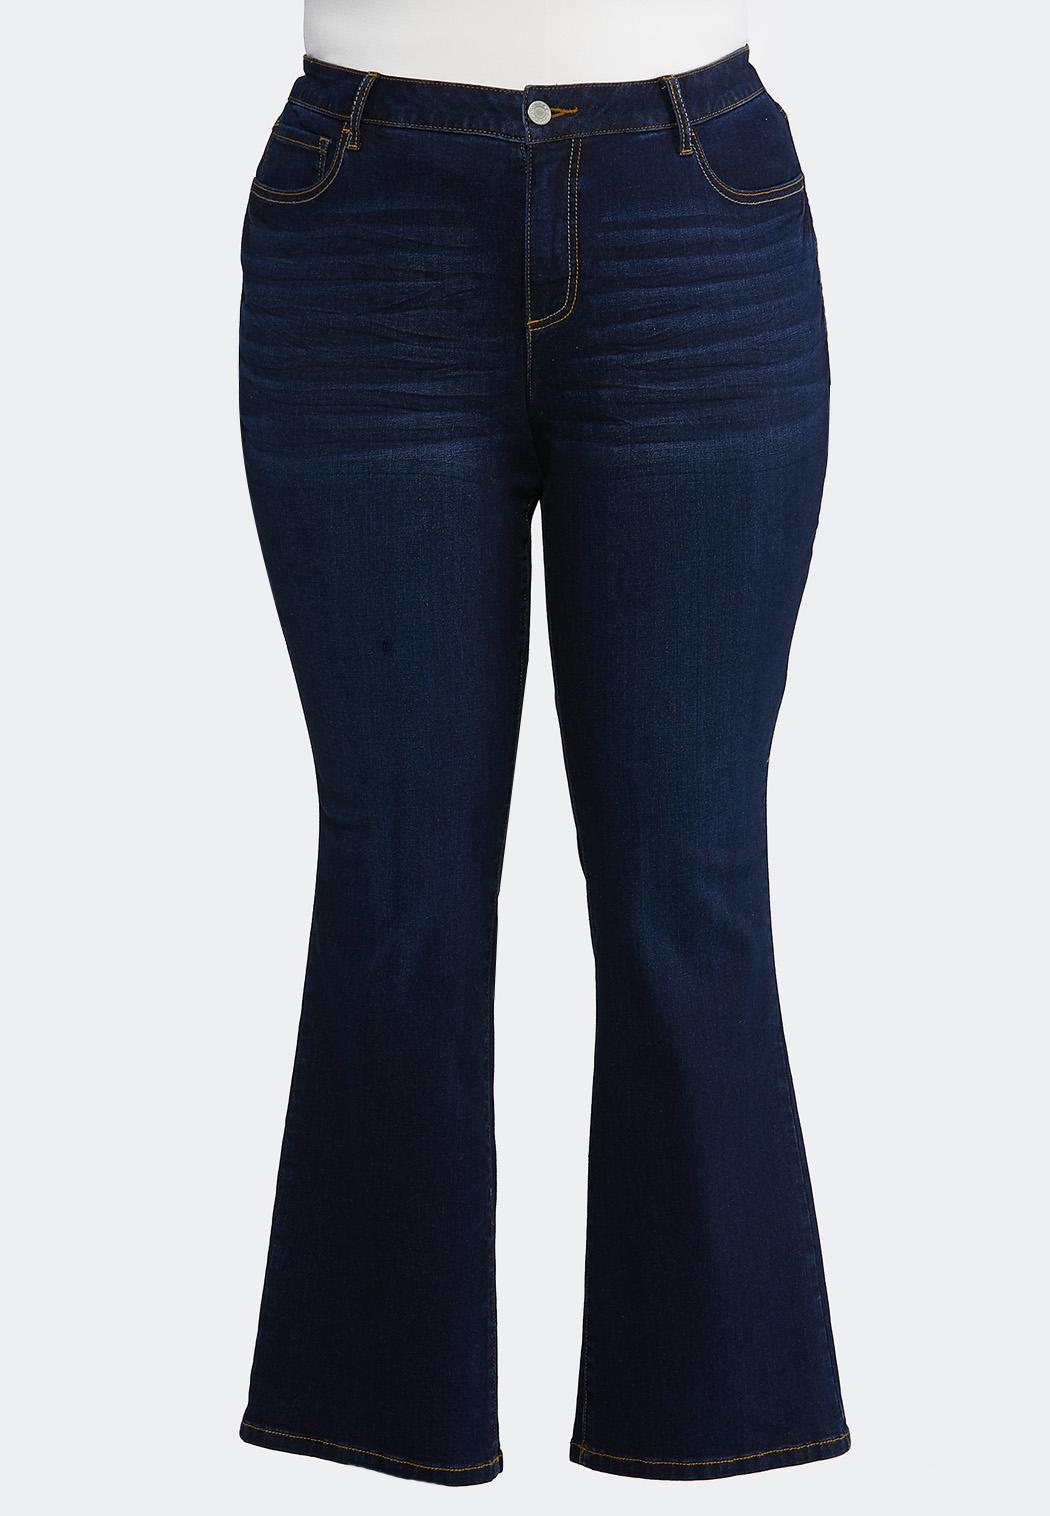 643fe0d710b Plus Size Dark Bootcut Jeans Bootcut Cato Fashions